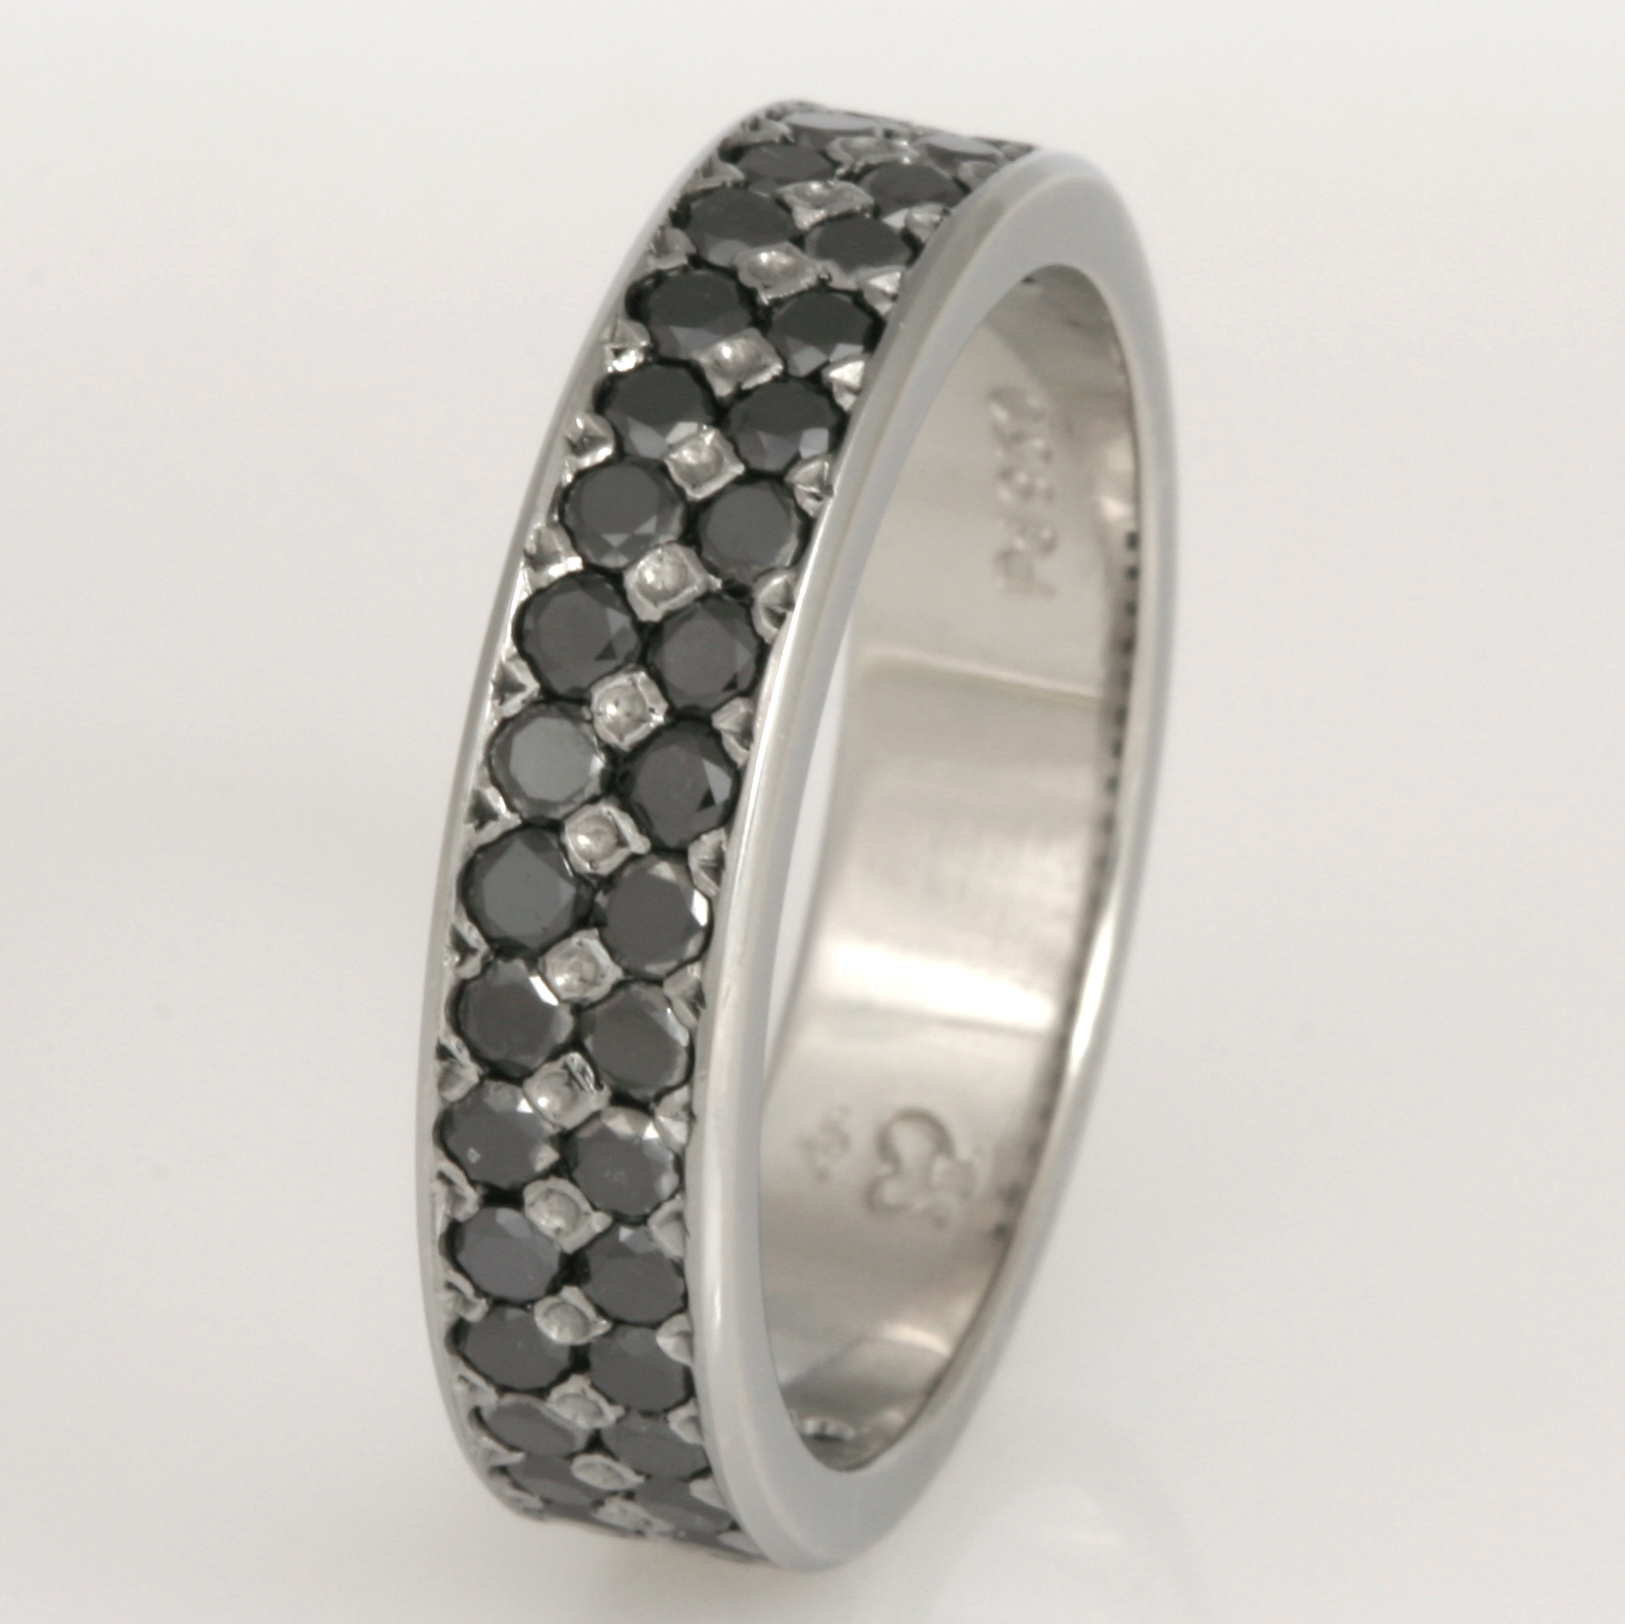 Handmade gents black diamond wedding ring